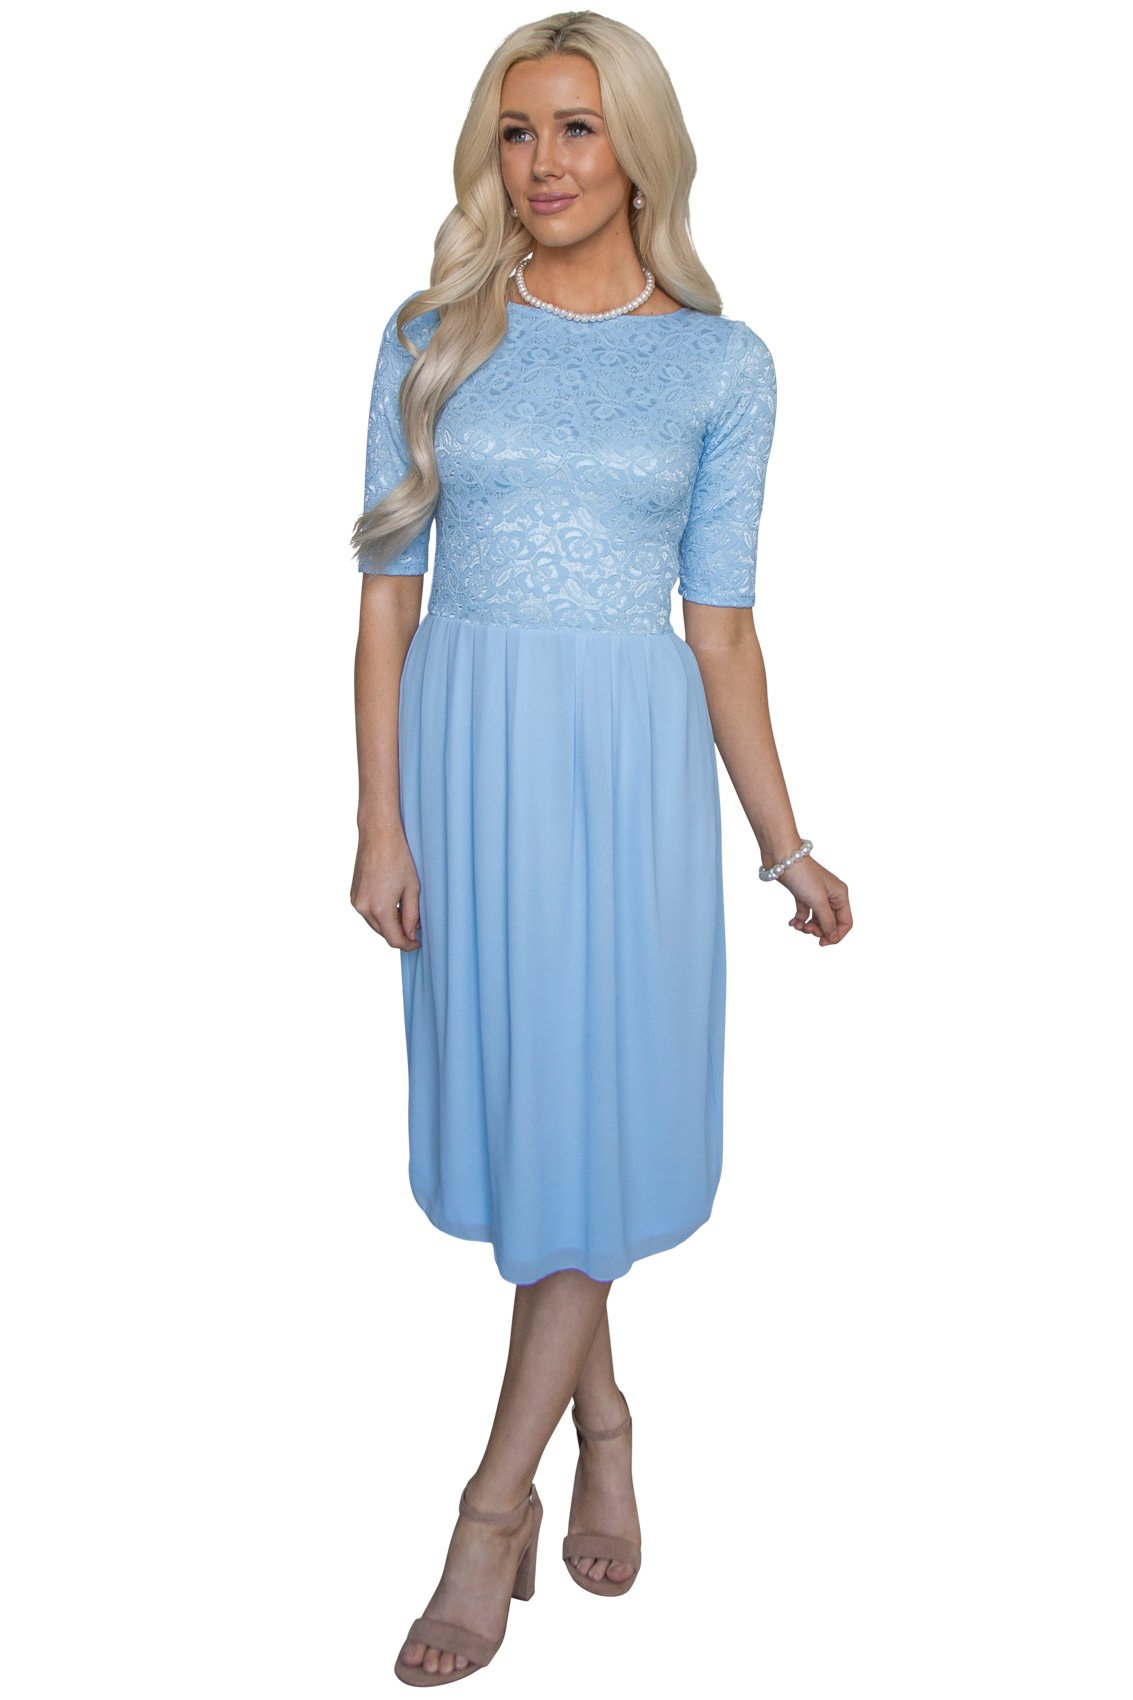 Available at Amazon: Jen Clothing Jada Modest Dress Modest Bridesmaid Dress or Modest Prom Dress